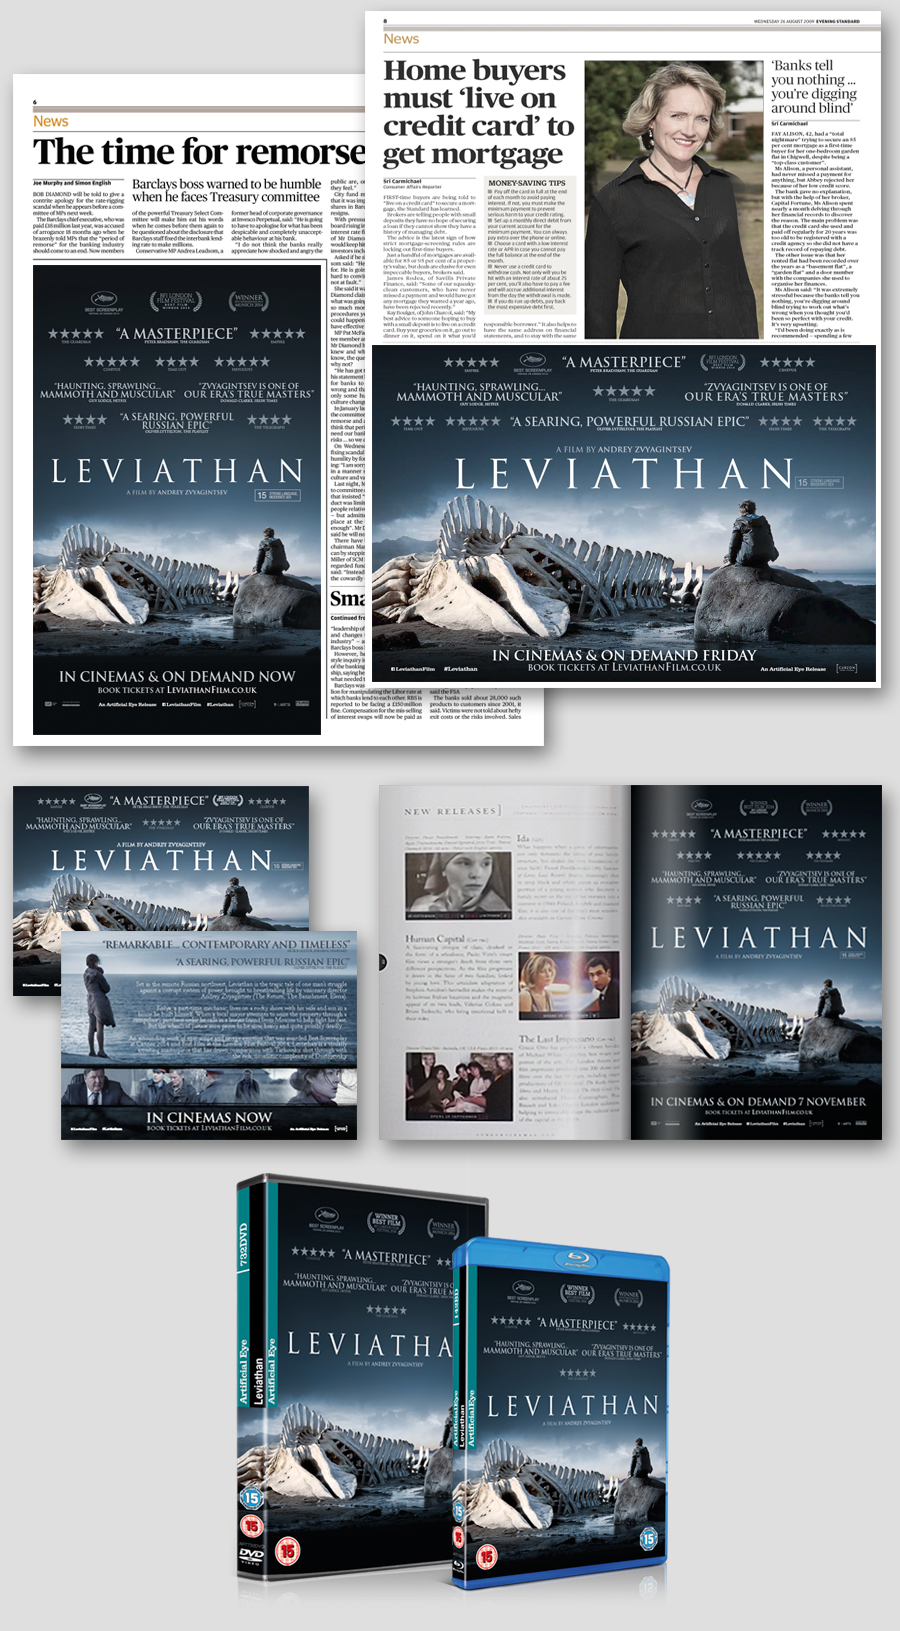 OOH Including 4 sheets, Exhibitor Formats,Multiple Press Executions, Online, DVD and Blu-Ray Packaging